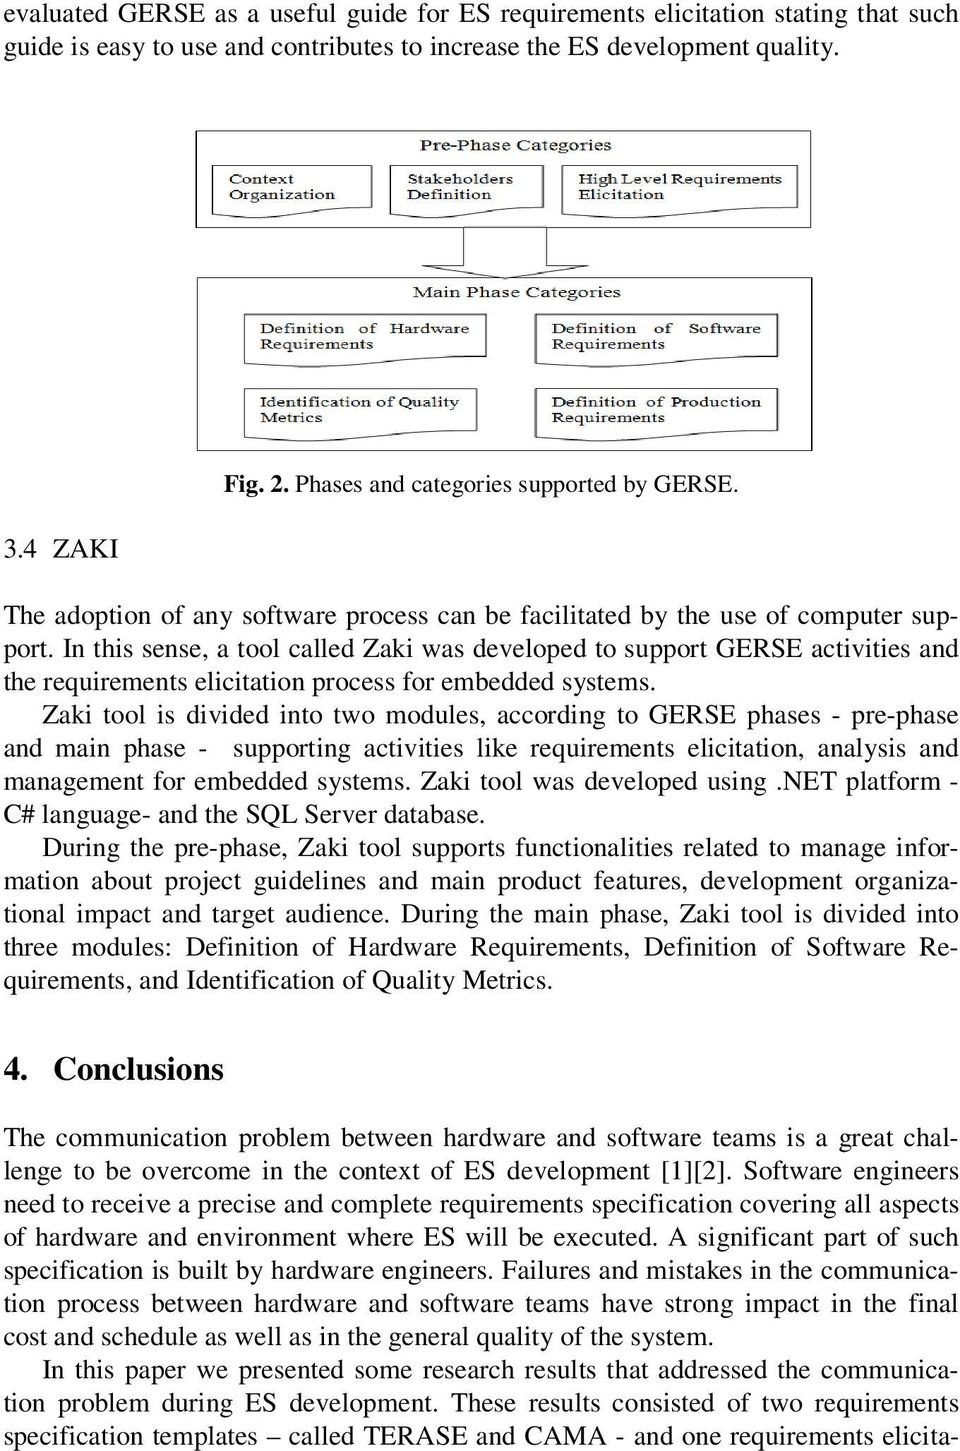 In this sense, a tool called Zaki was developed to support GERSE activities and the requirements elicitation process for embedded systems.